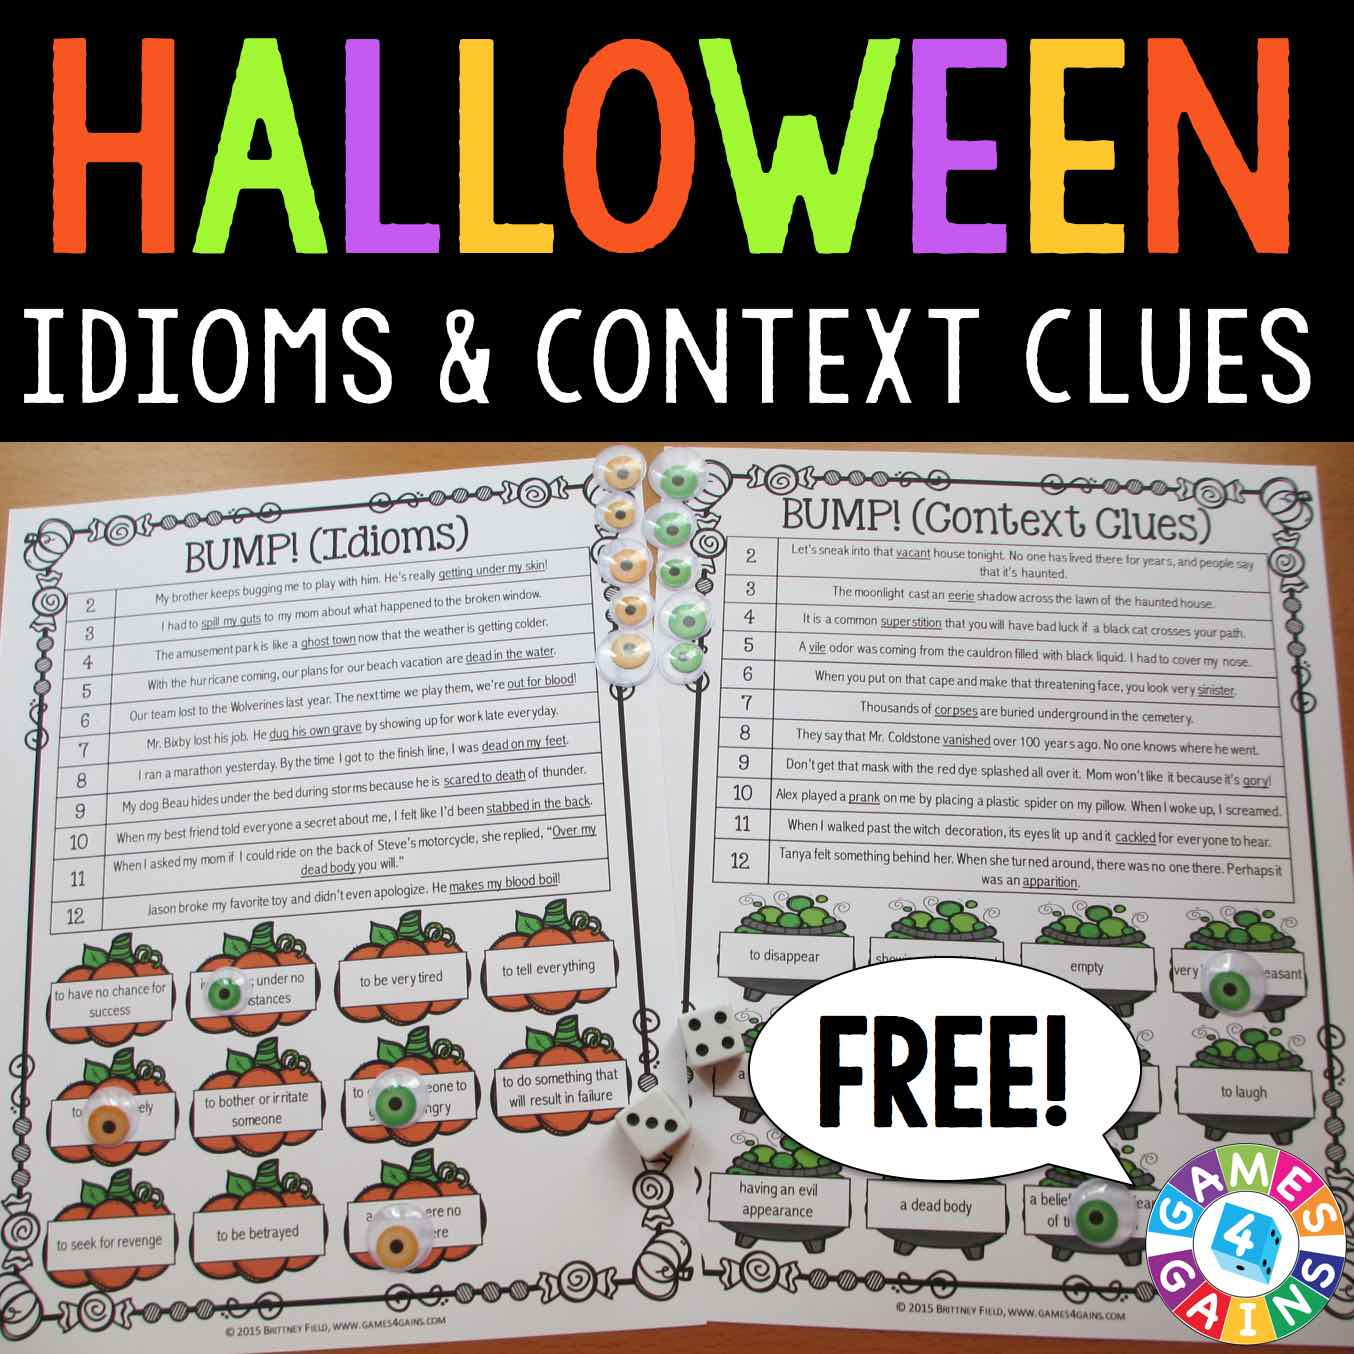 Bump Up The Fun With These Free Halloween Games Games